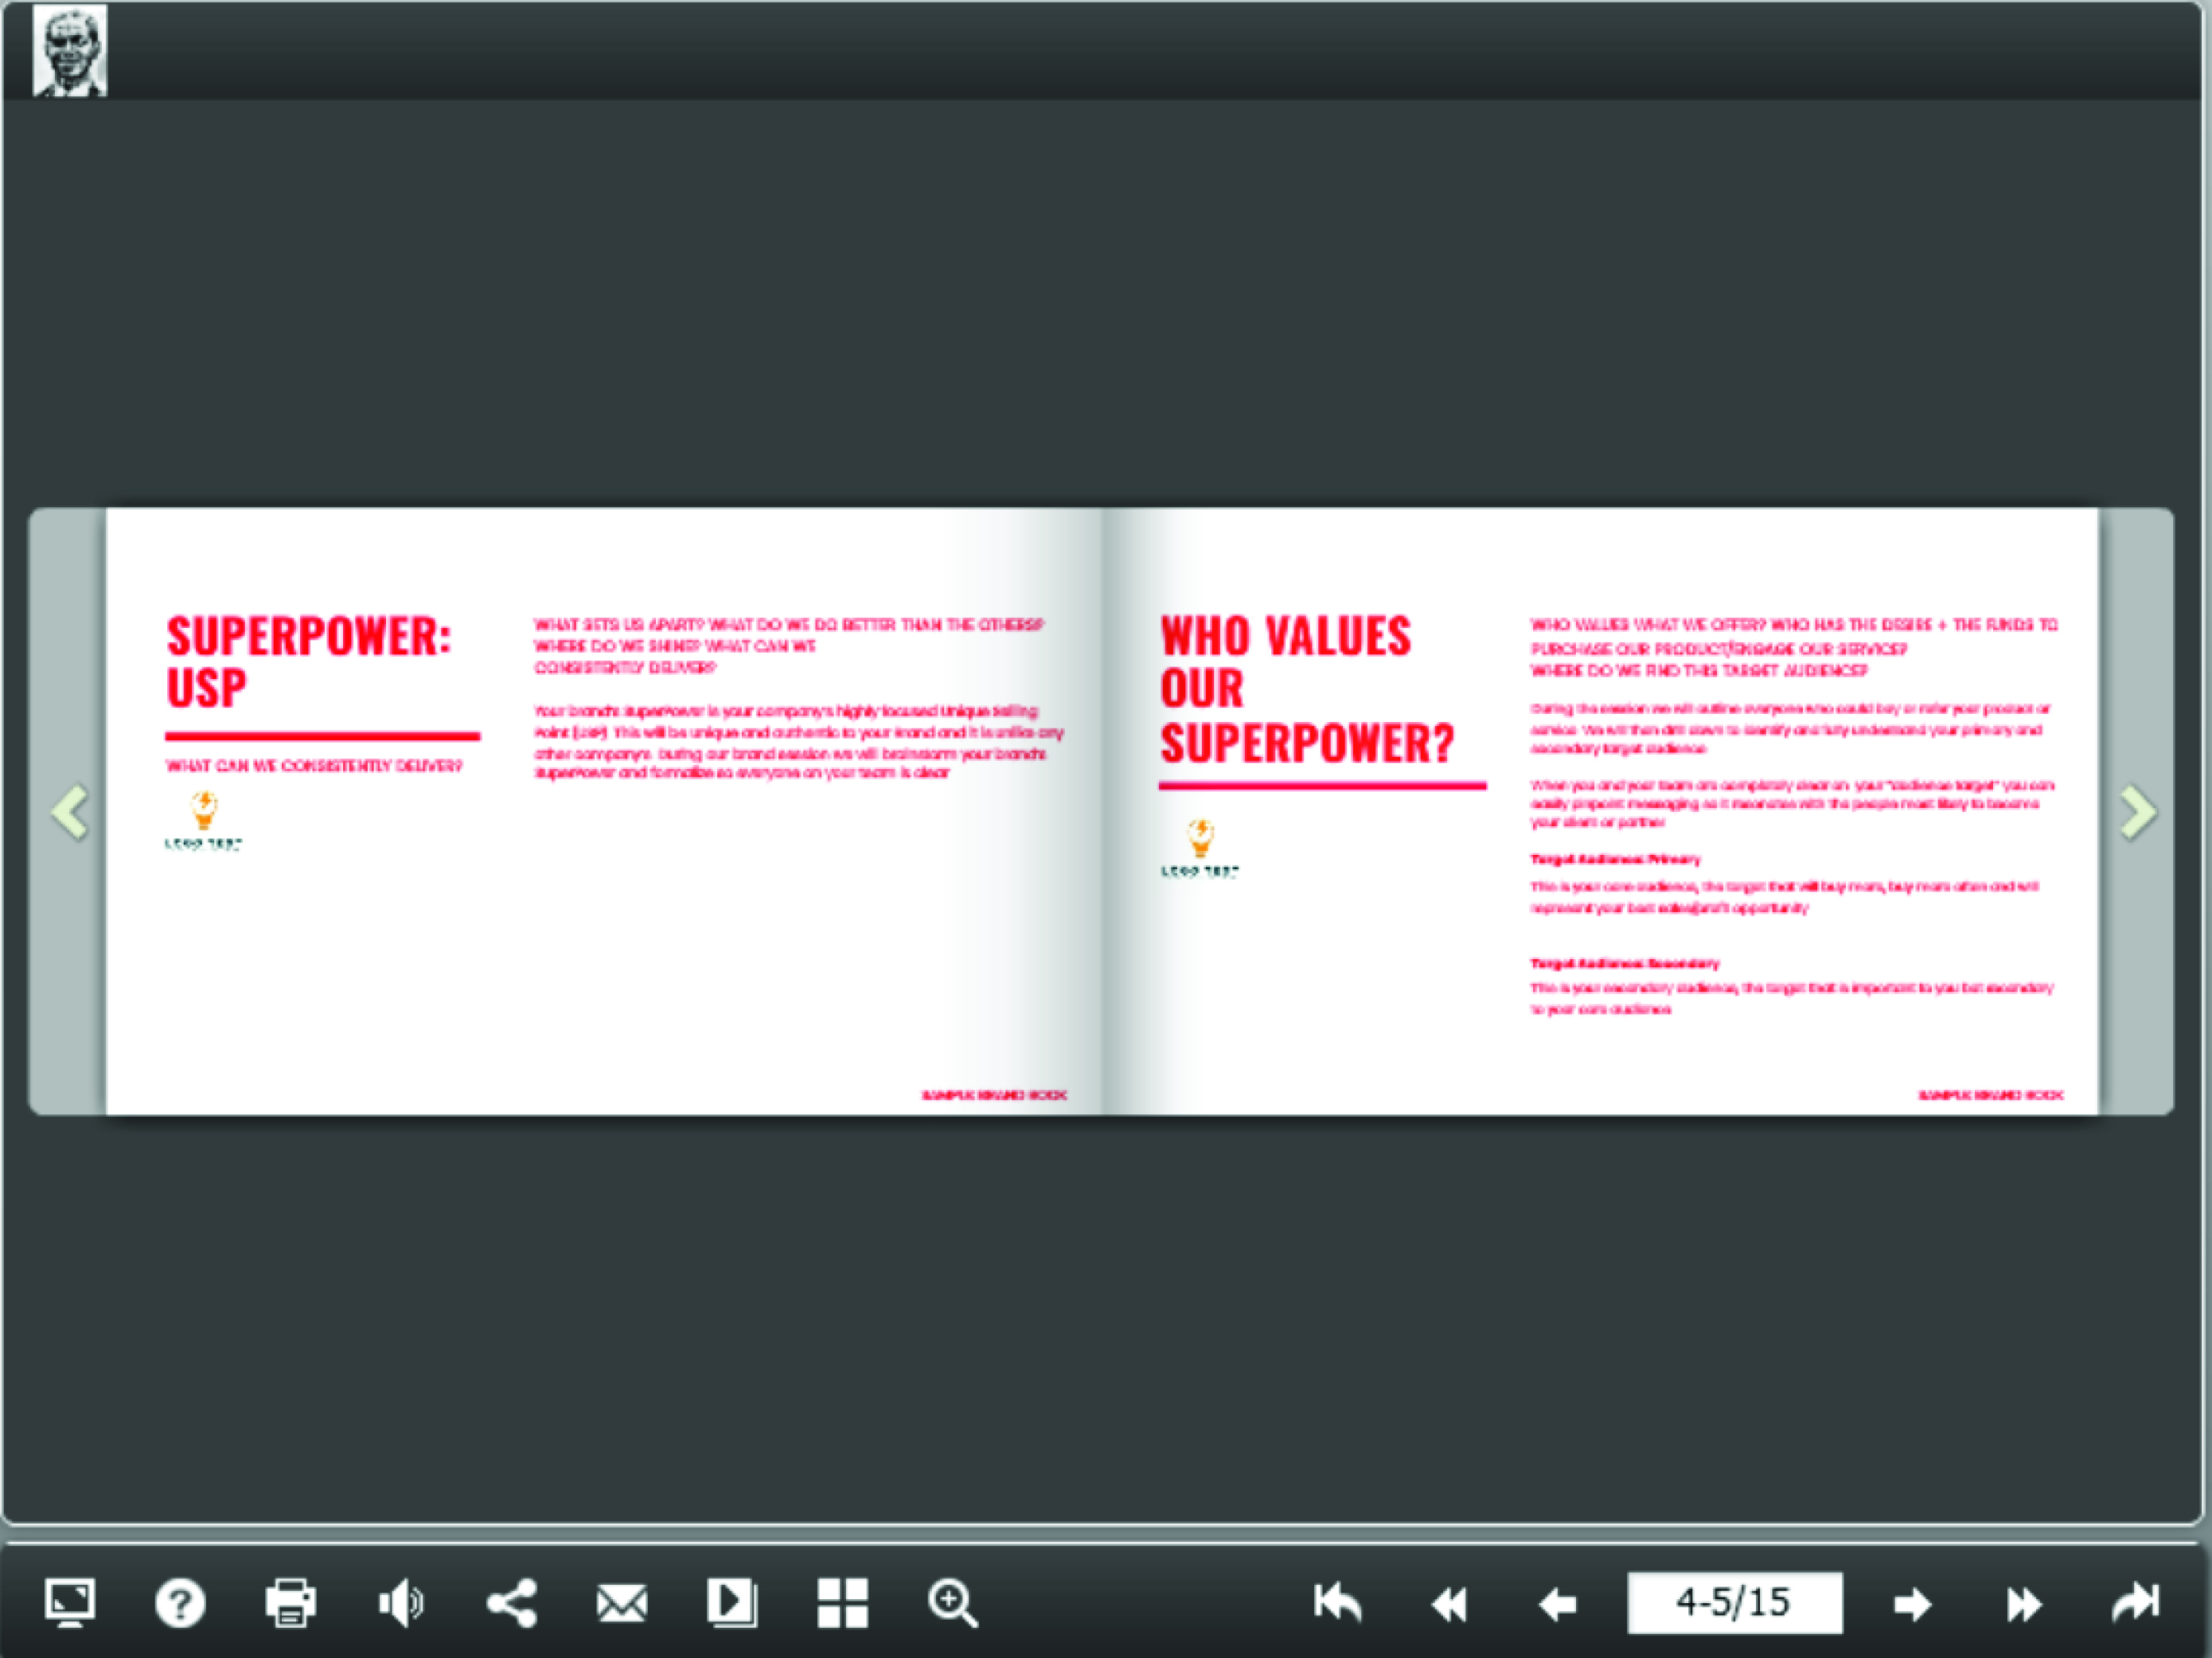 Convert your PDF or images to an amazing flipbook with unlimited pages